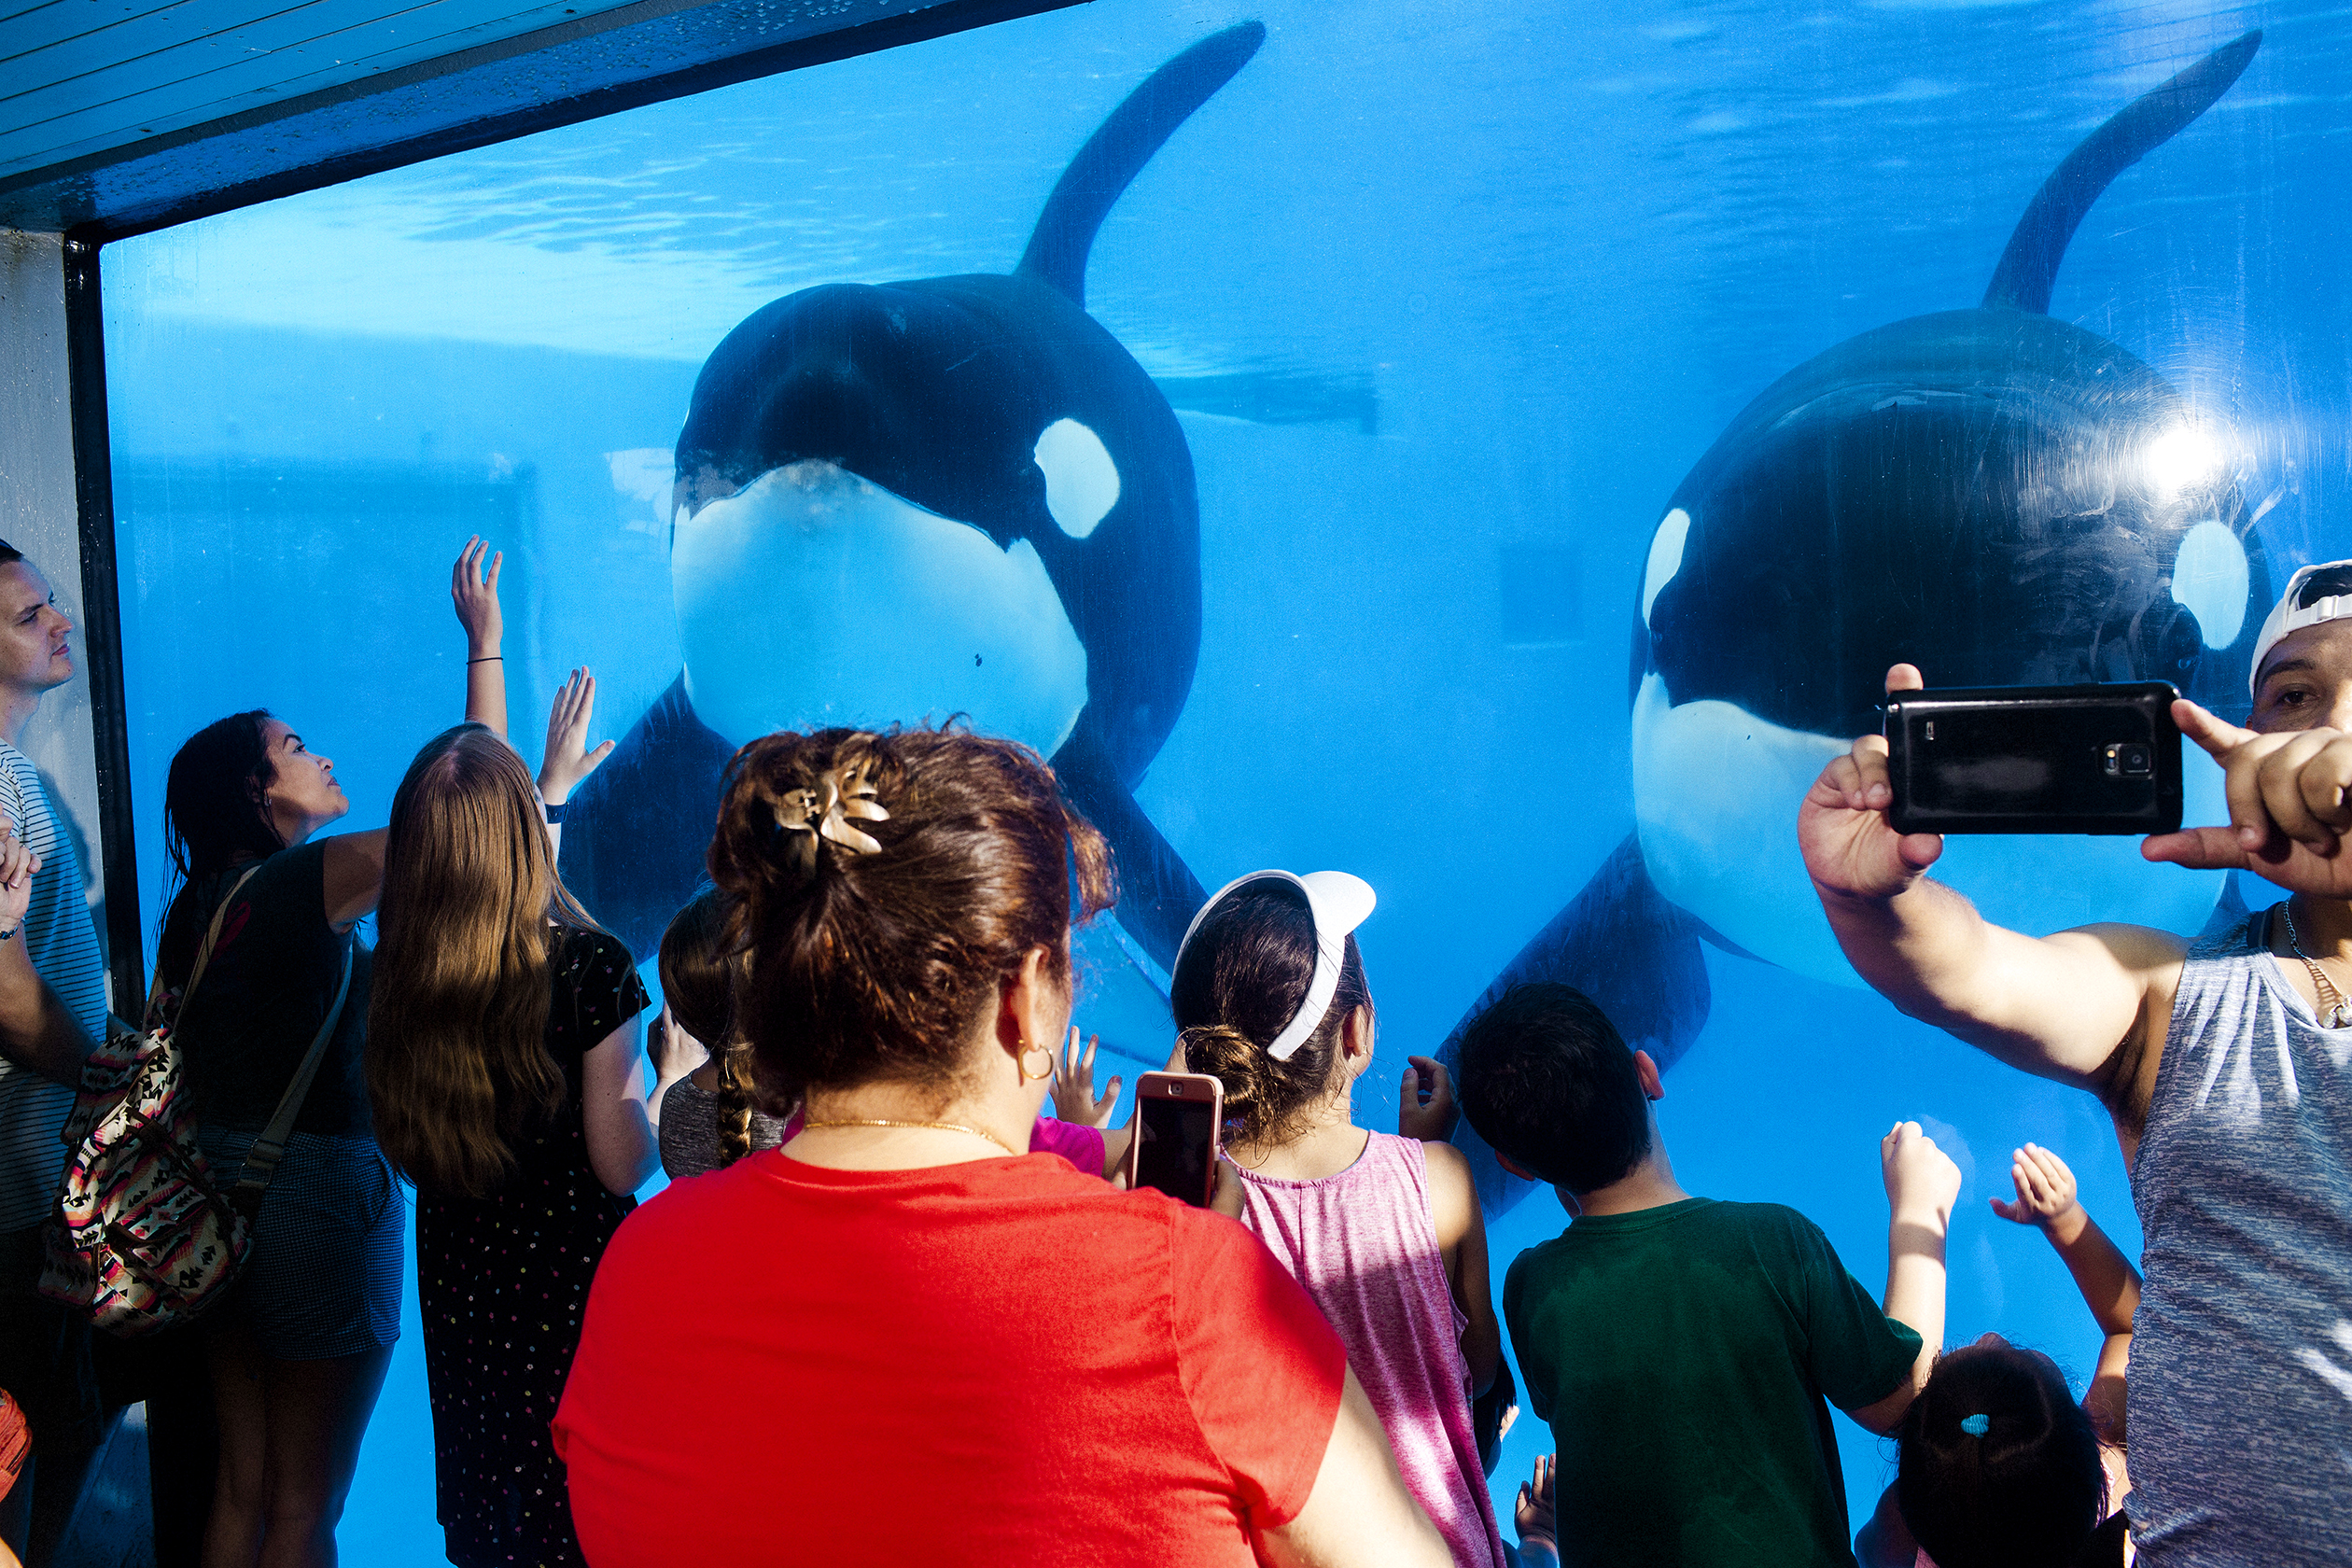 Killer whales and trained-animal shows have been star attractions at SeaWorld's theme parks, but controversy triggered by a whale trainer's death in 2010 has dragged the company down.